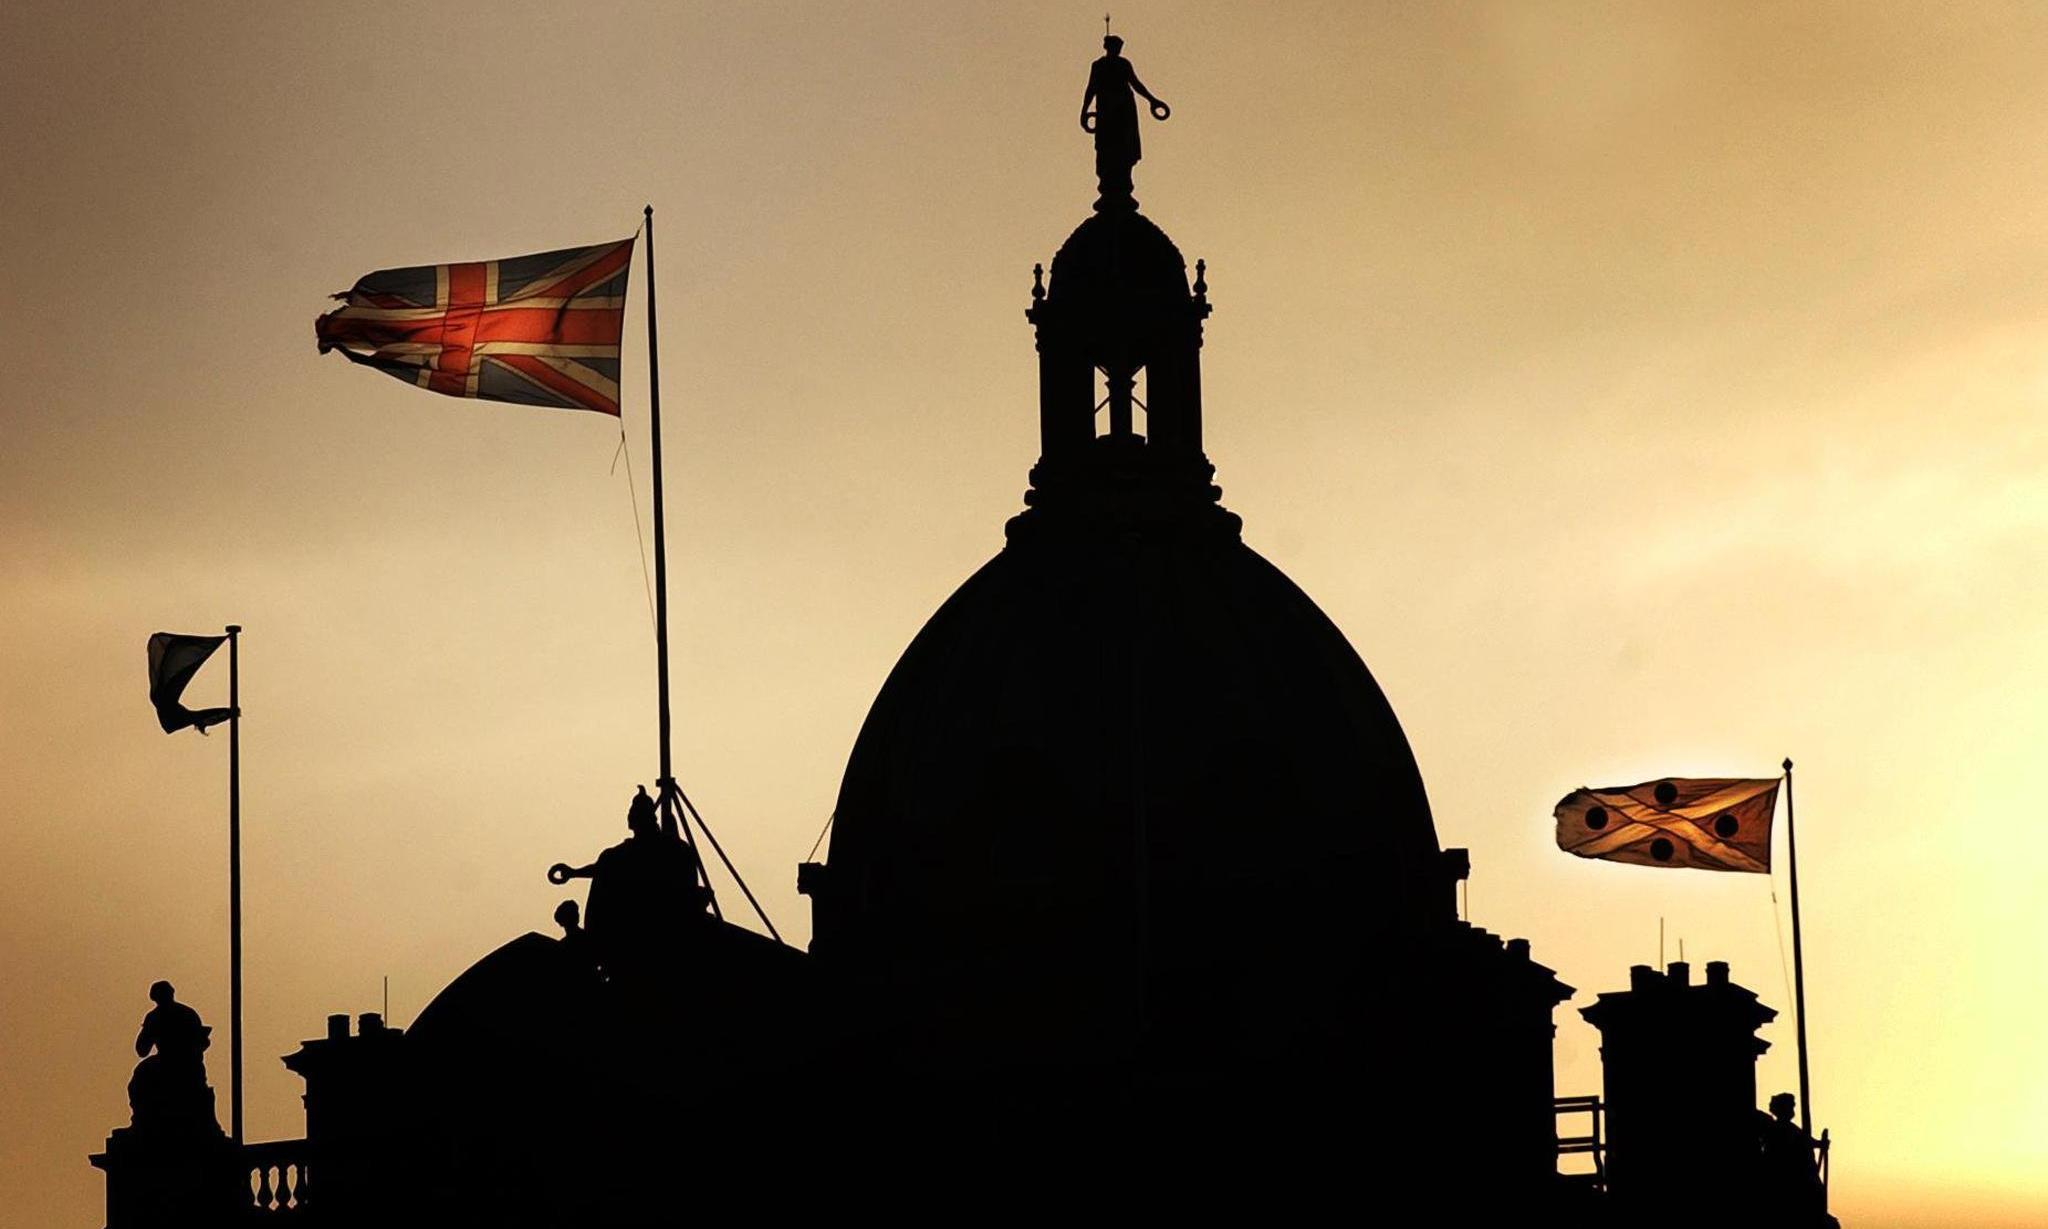 Brexit must work for the whole UK to see off Scottish nationalism